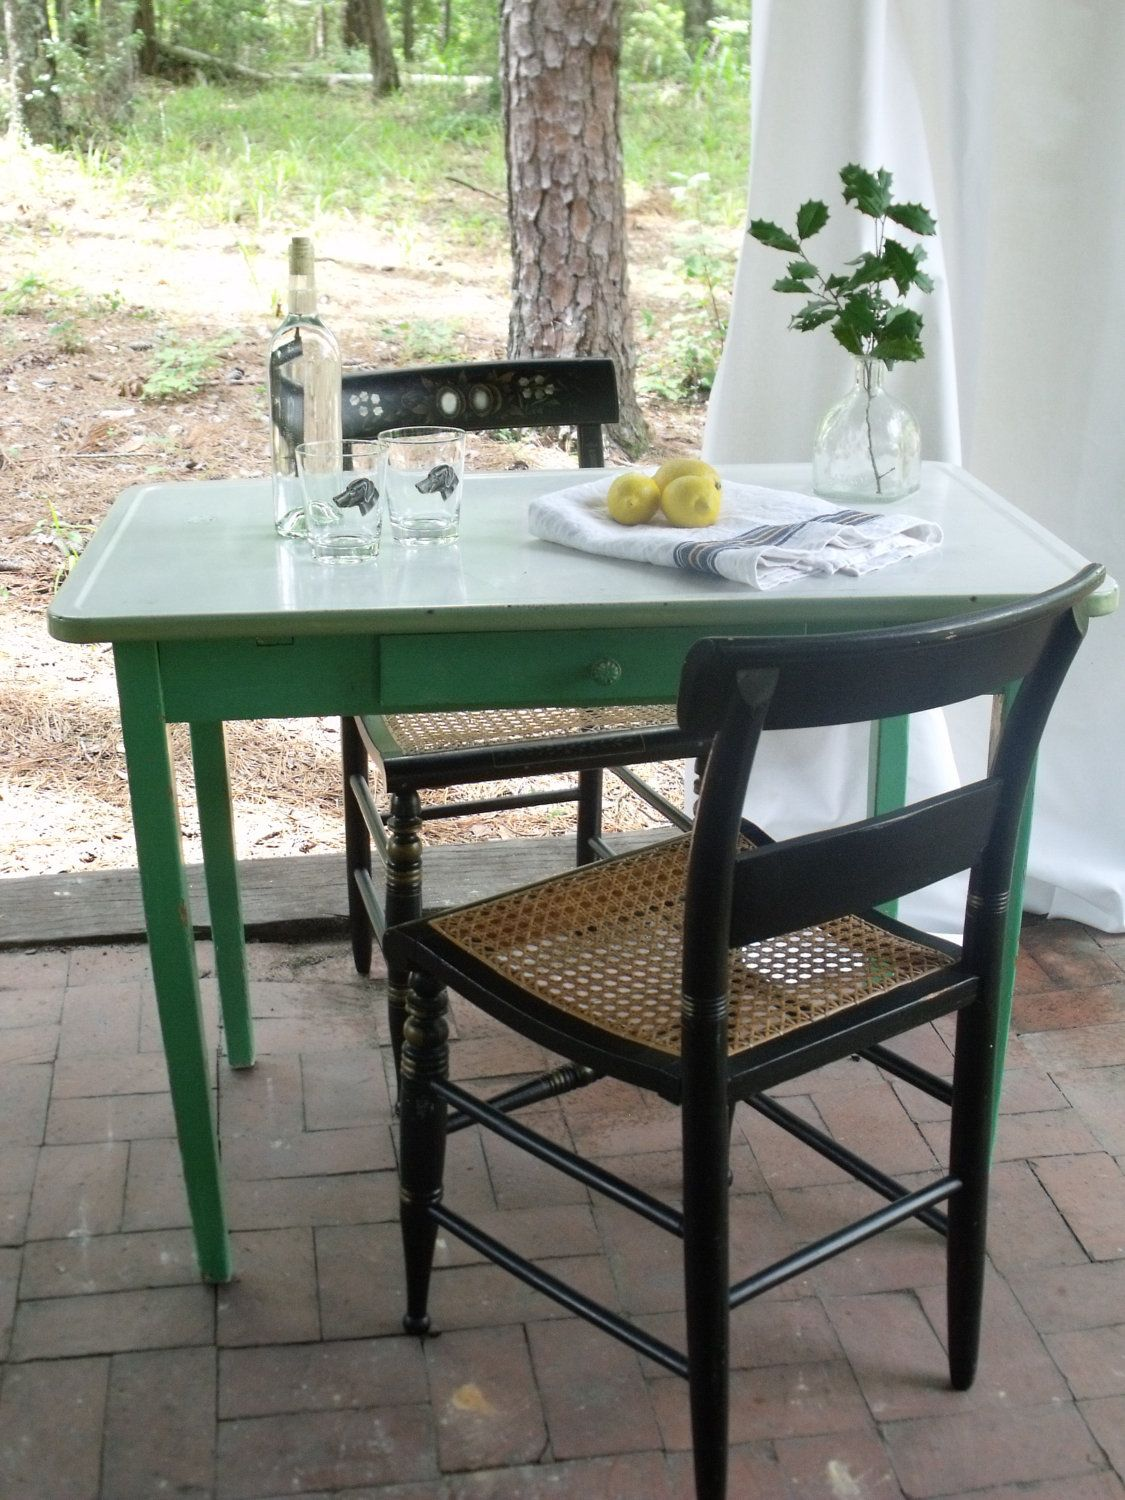 Vintage Metal Top Kitchen Table With Green Frame 175 00 Via Etsy